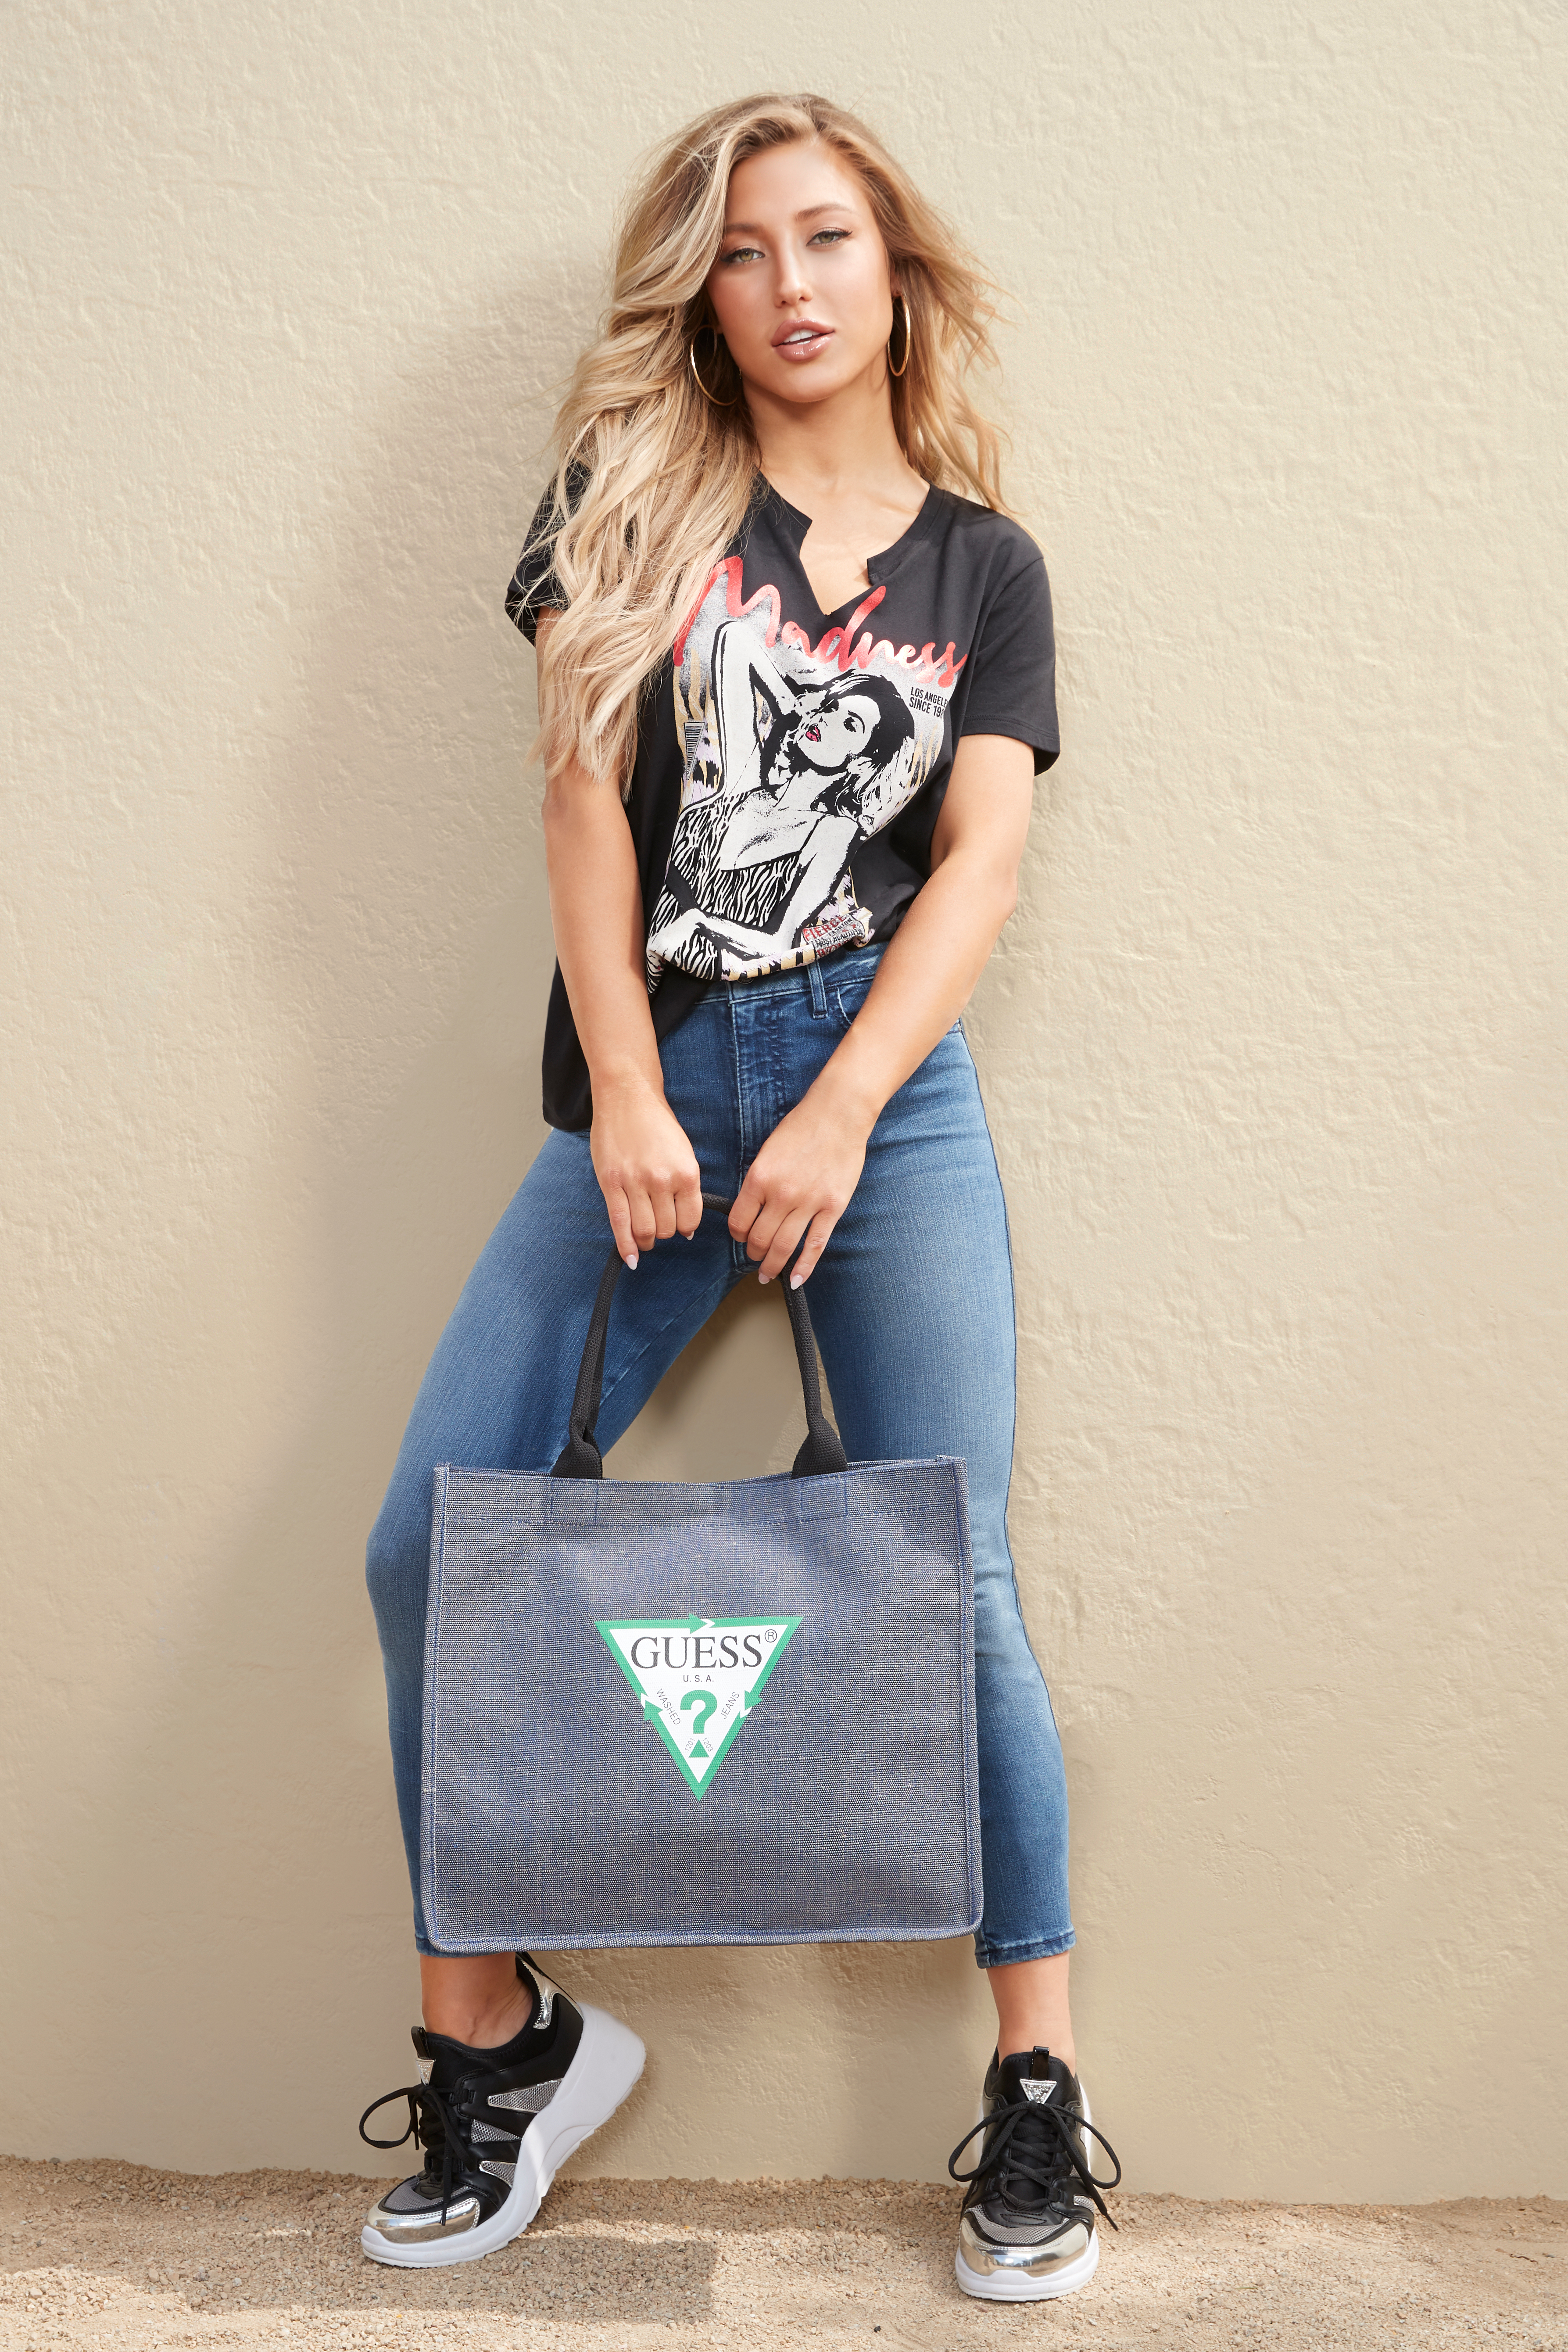 GUESS?, Inc. Introduces GUESS Eco